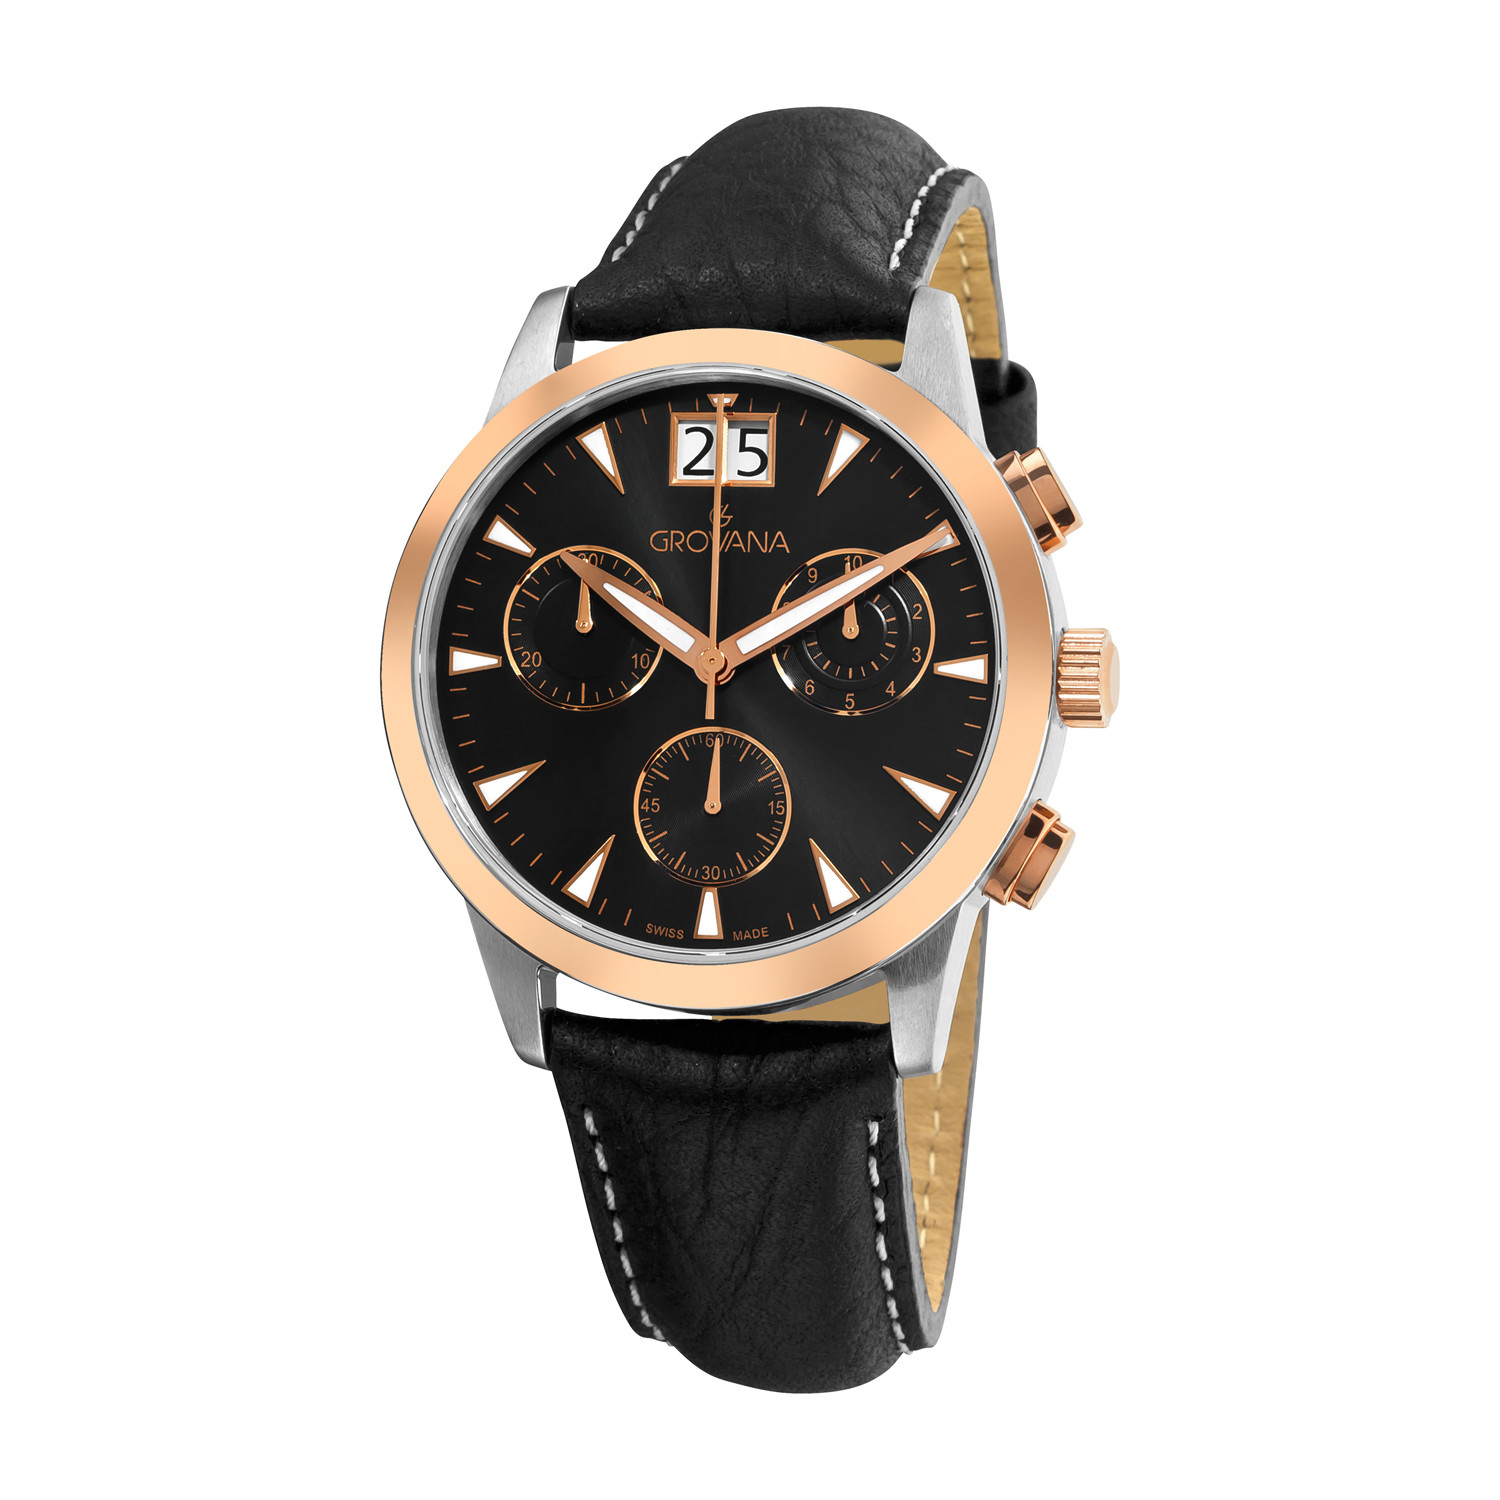 Grovana Chronograph Quartz // 1722.9557 - Grovana